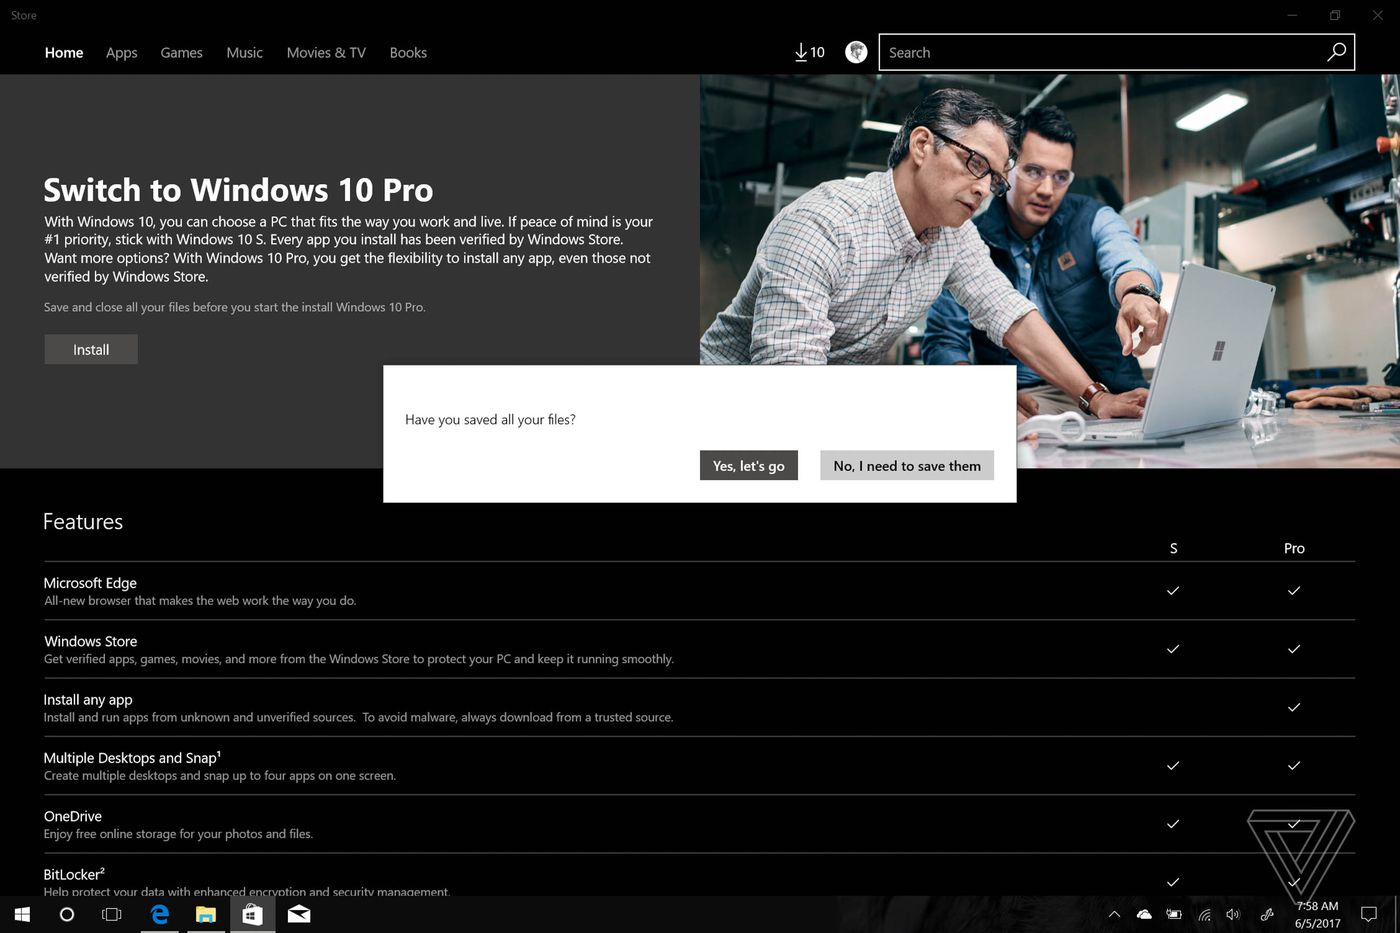 How to upgrade from Windows 10 S to Windows 10 Pro - The Verge